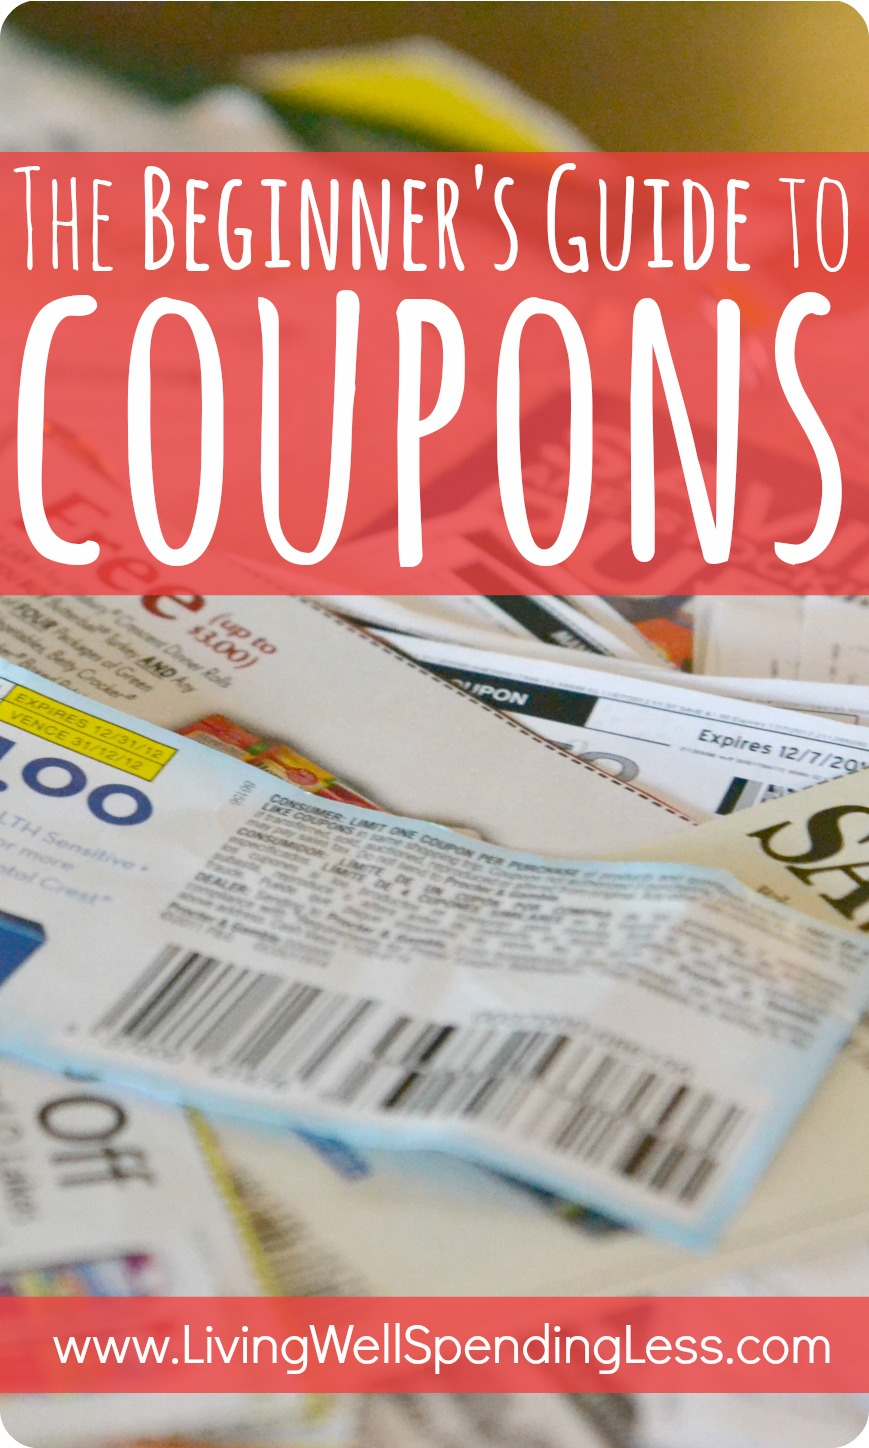 The Beginner's Guide To Coupons. The BEST Free Online Step